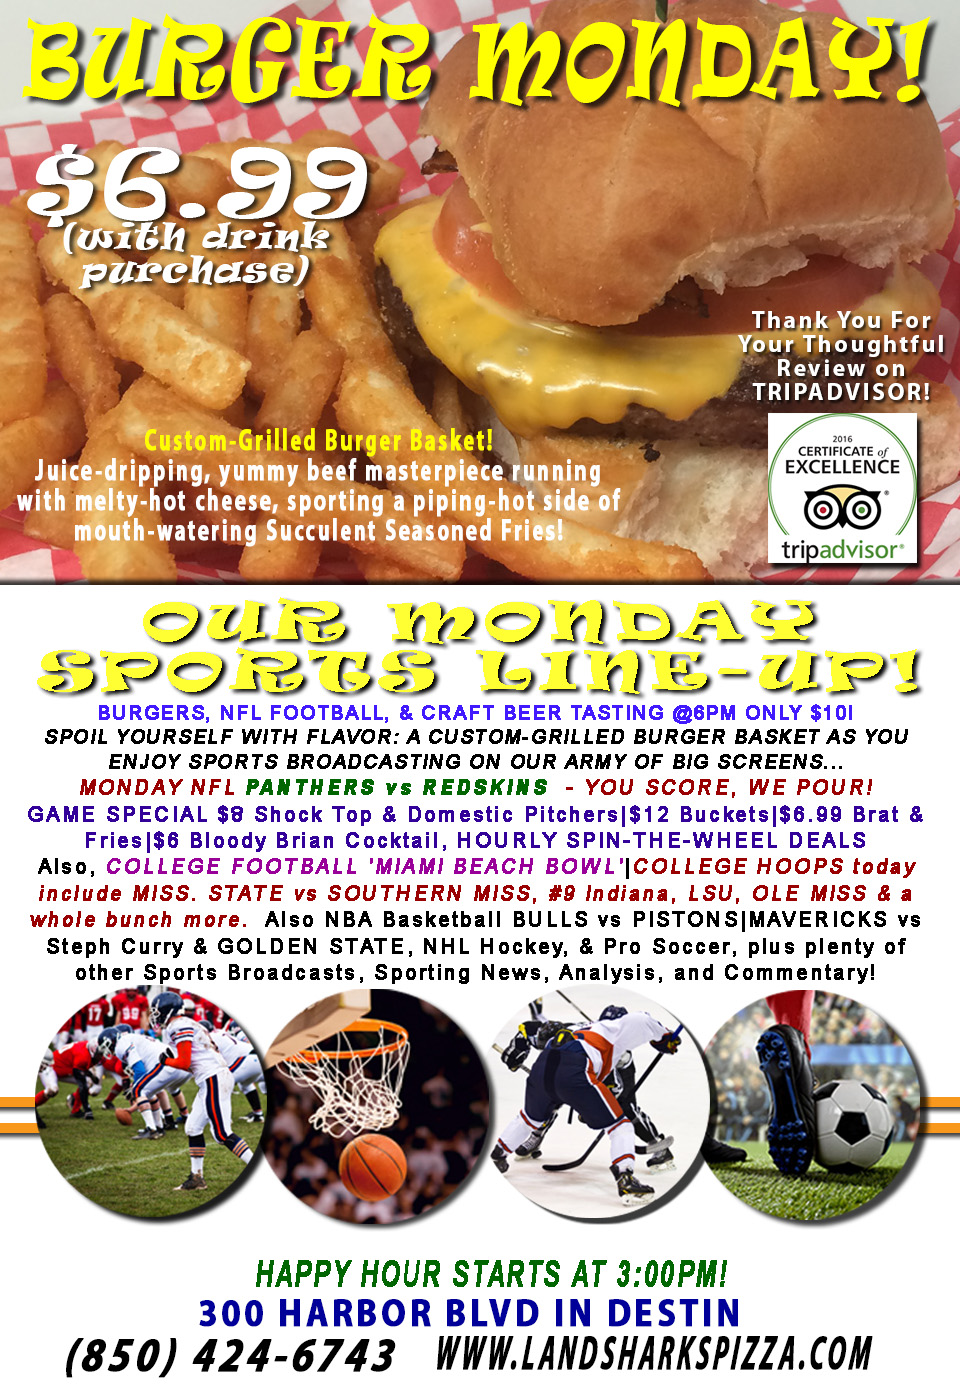 NFL TODAY The REDSKINS vs CAM NEWTON'S WARDROBE, GAME-TIME SPECIALS! Craft Beer Tasting@6PM! NBA, NHL, & Pro Soccer & MORE!